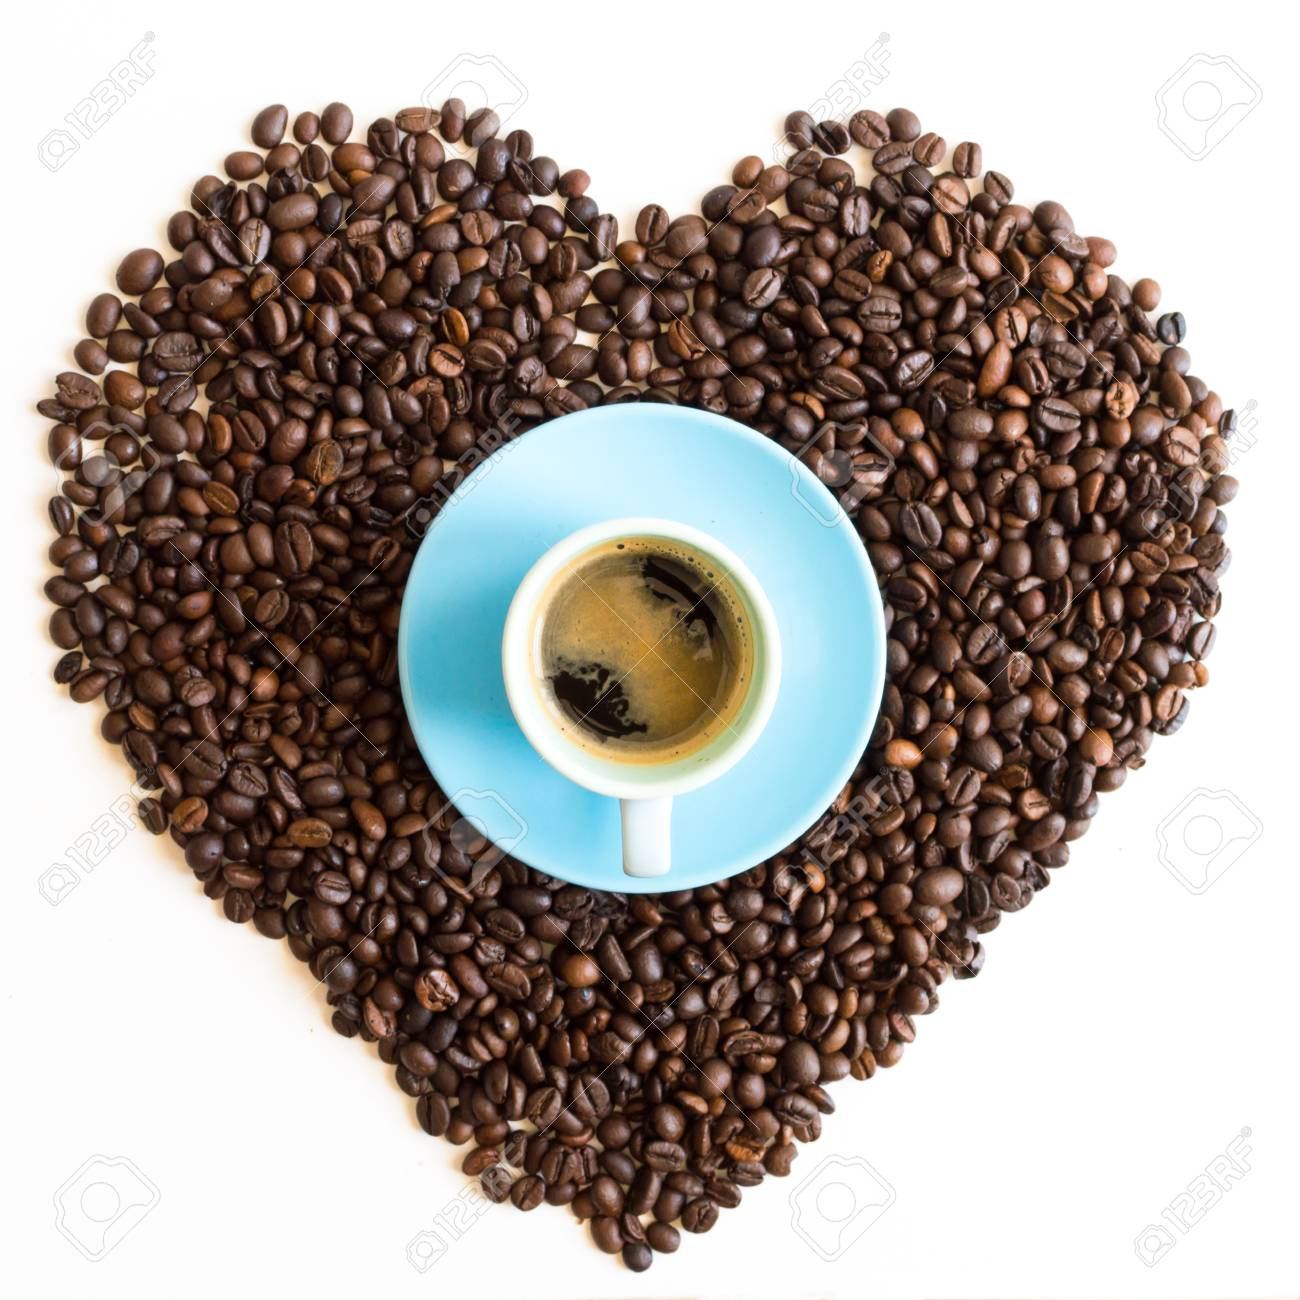 Heart of coffee beans with azure blue cup isolated on white background Stock Photo - 80156032